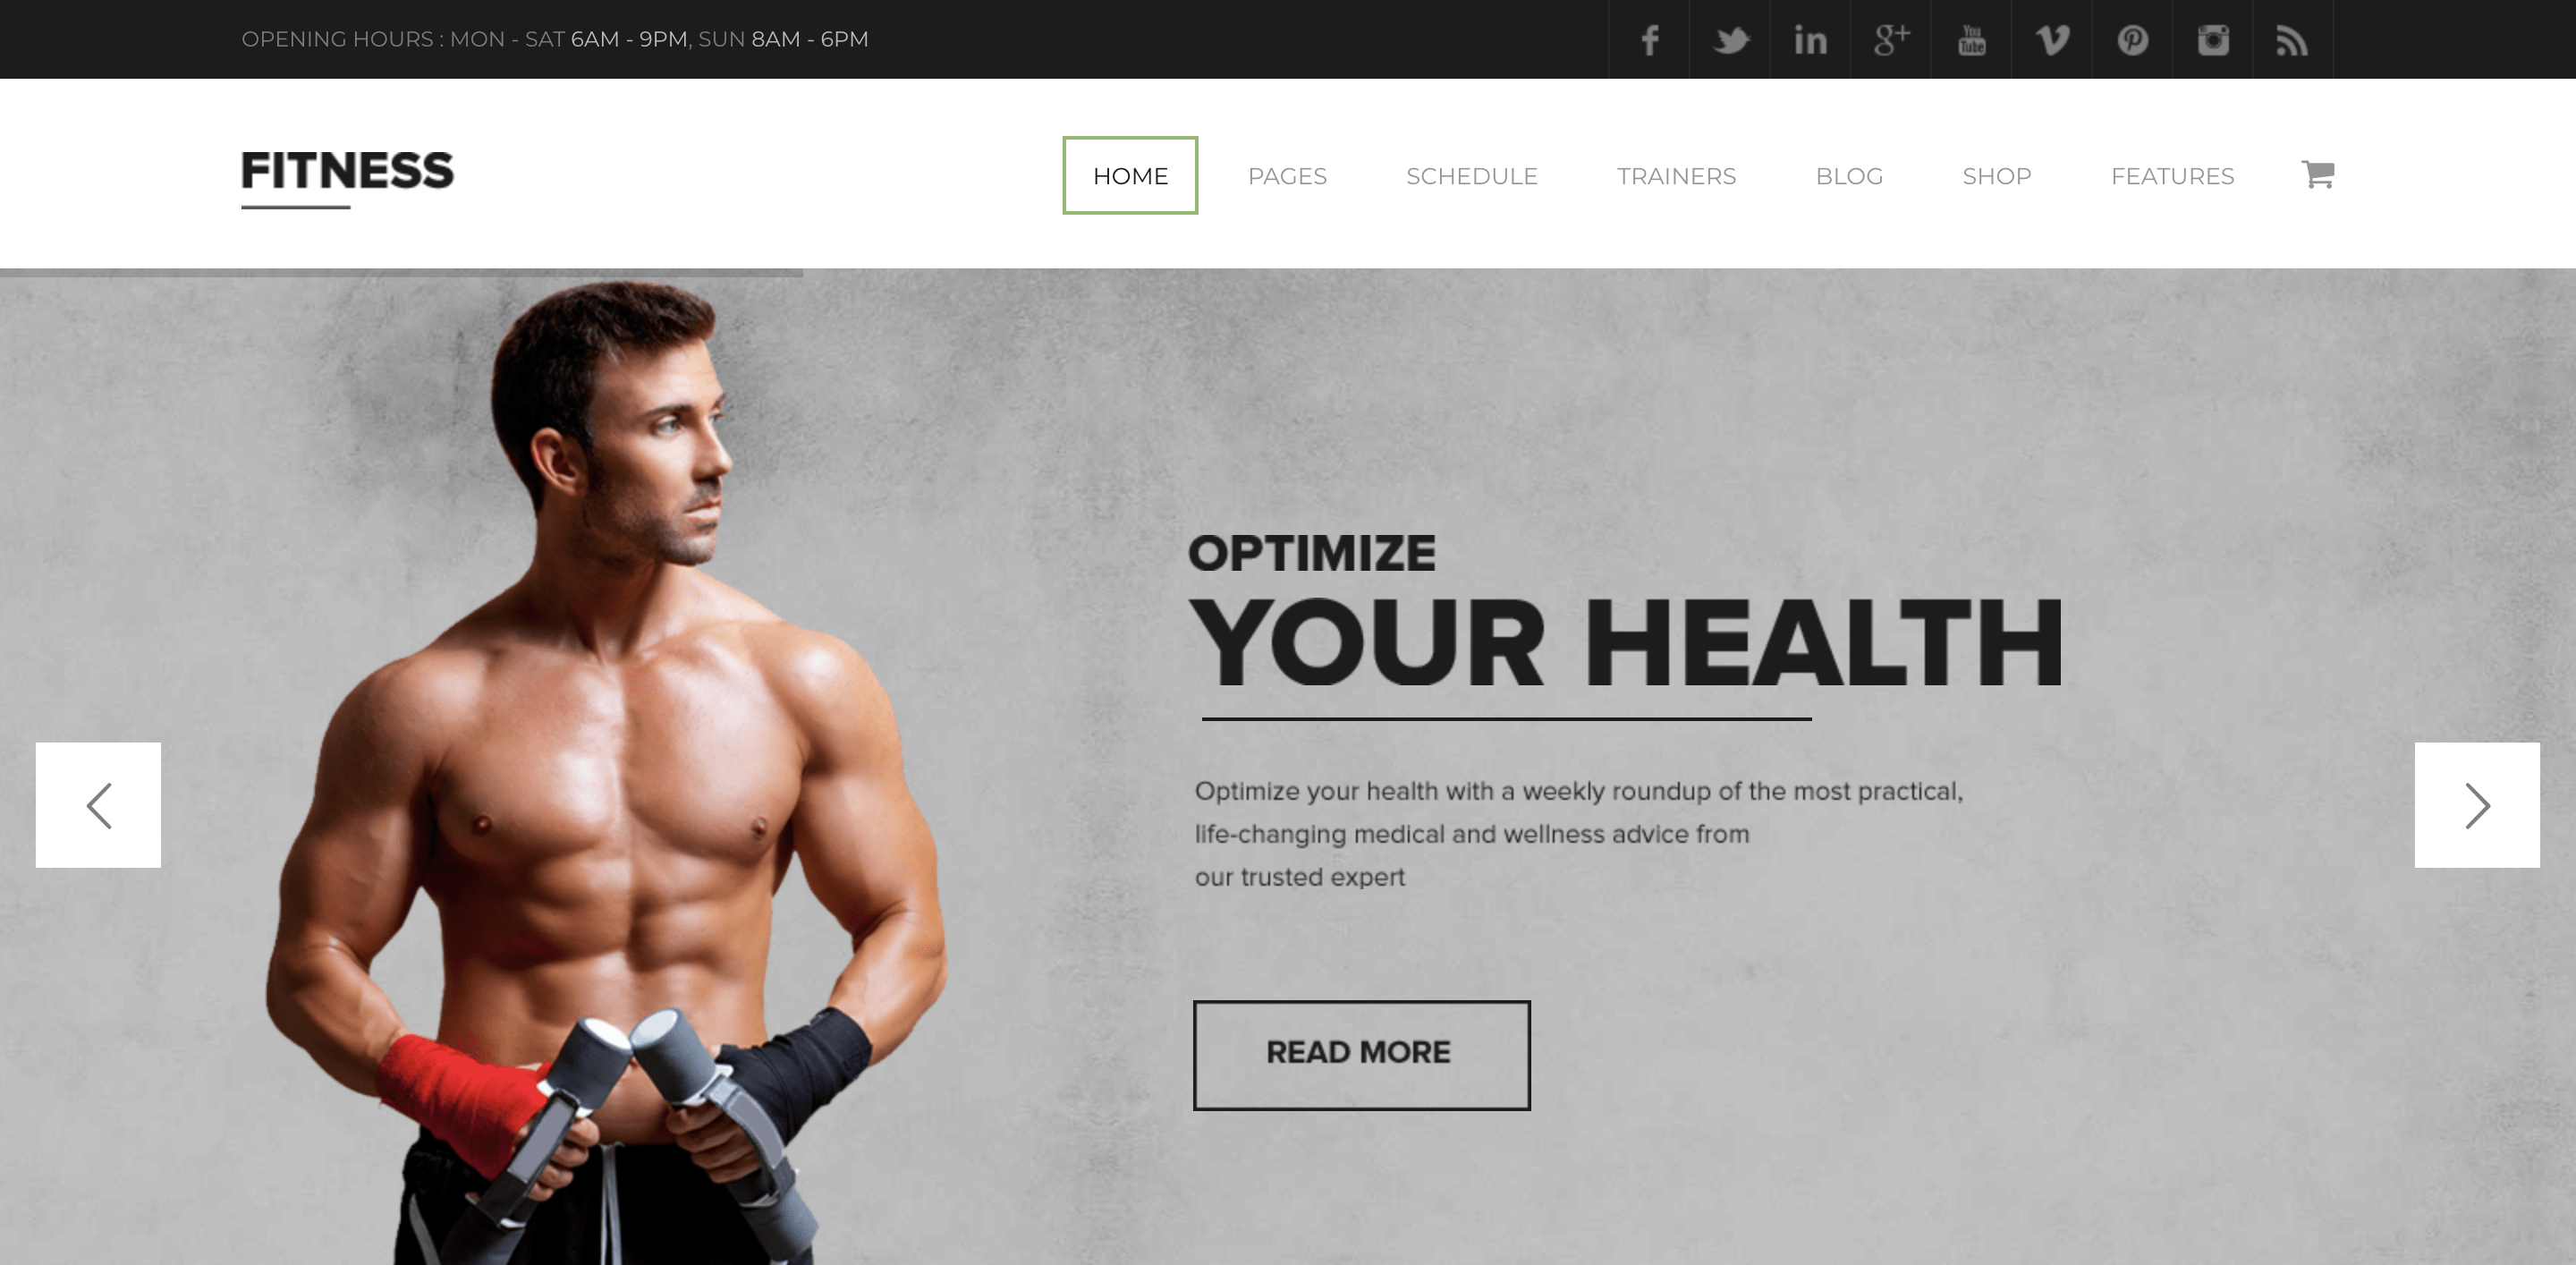 Fitness - Gym Fitness Premium WordPress Theme Just another The Web Design Factory Sites site.png